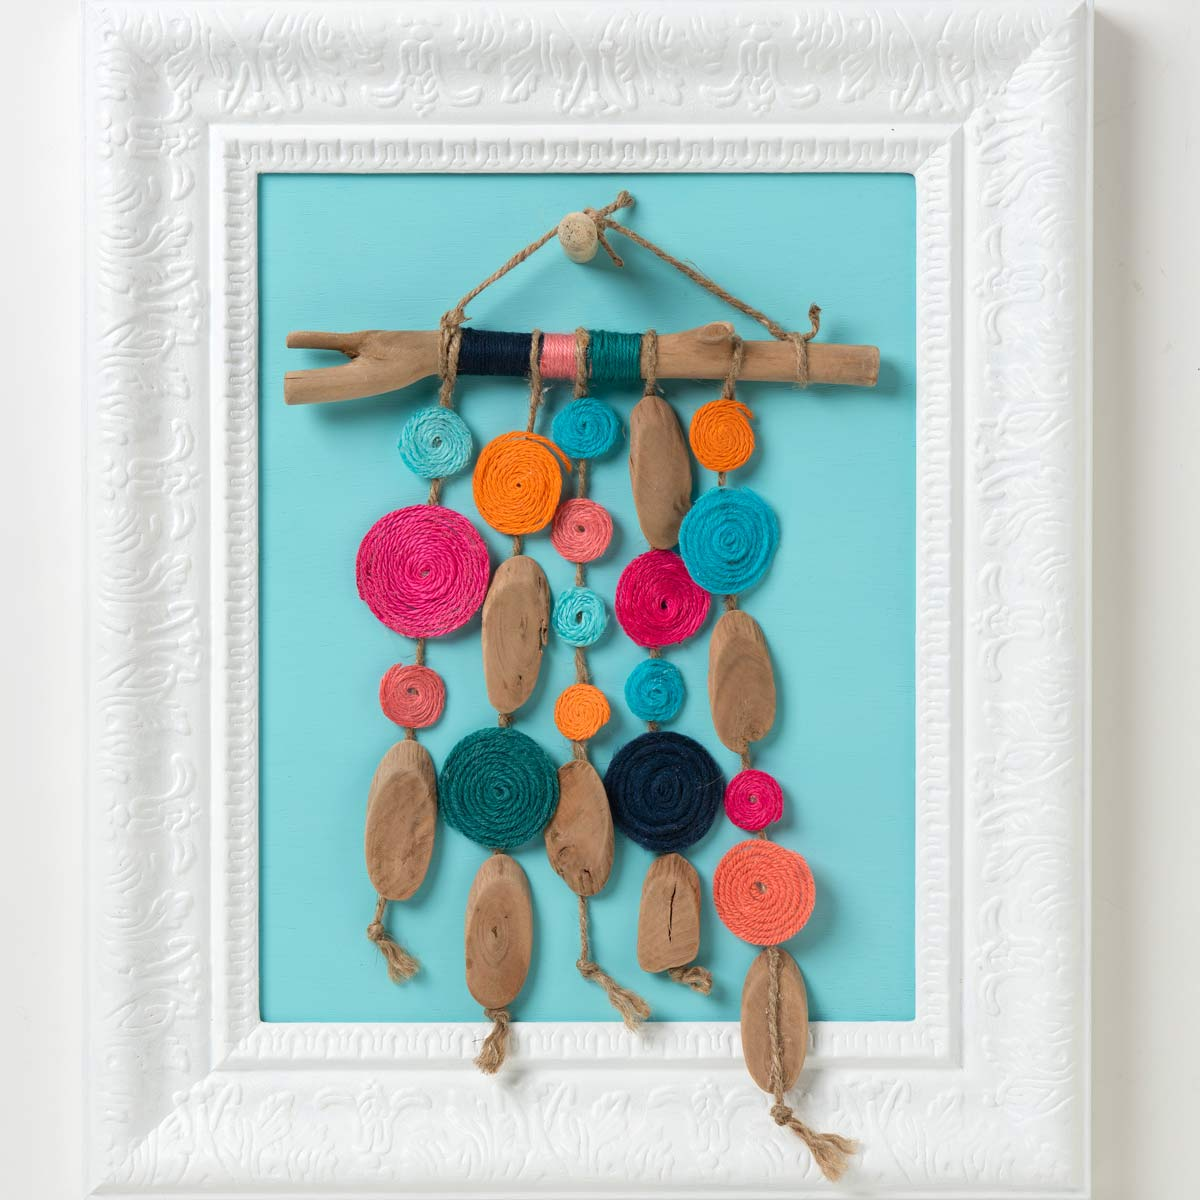 Yarn Wall-Hanging